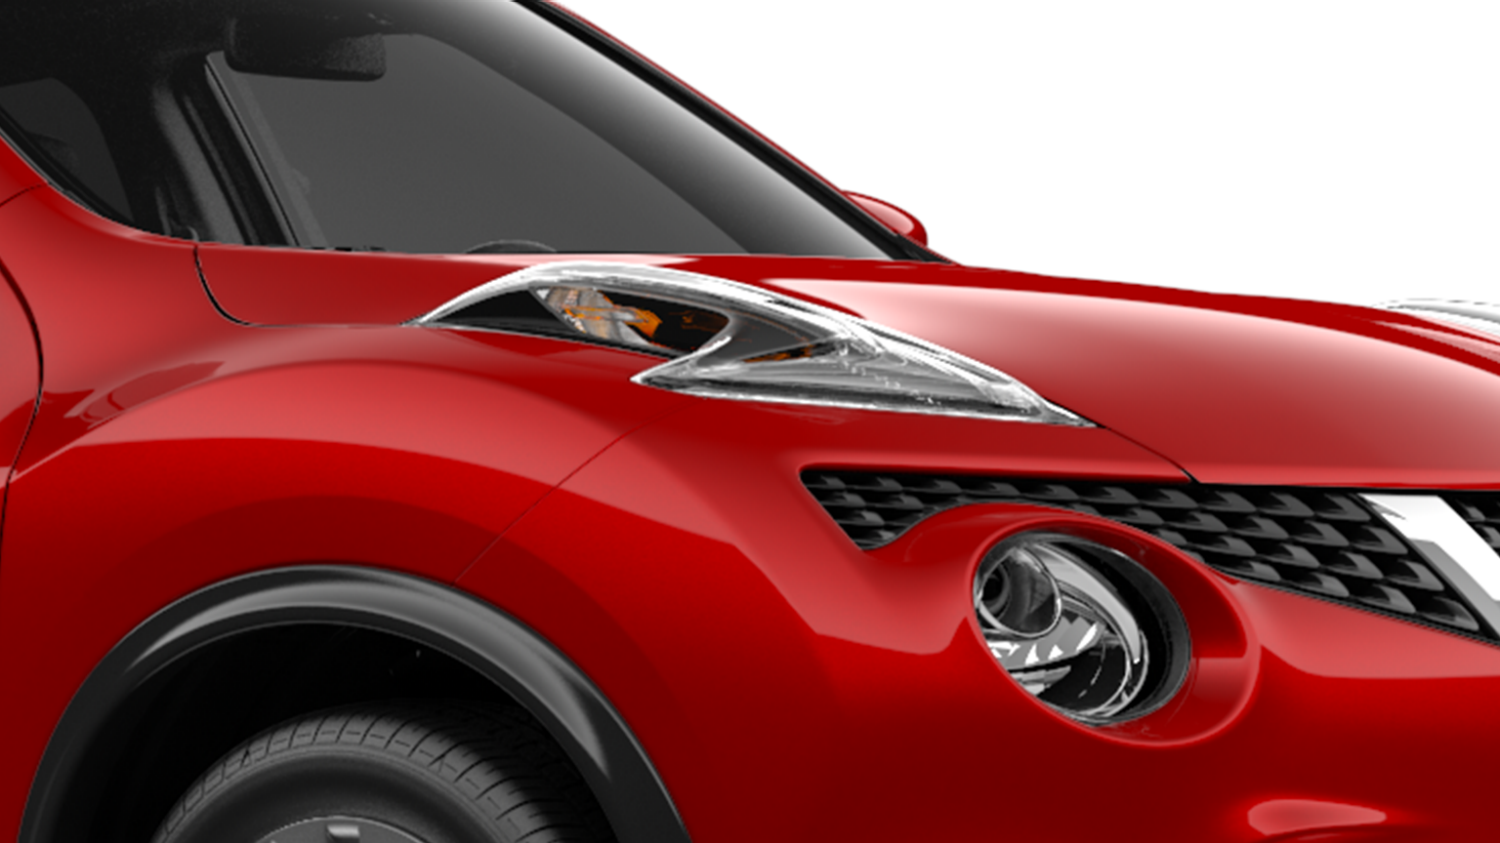 Compact & mini SUV design - Headlights | Nissan Juke